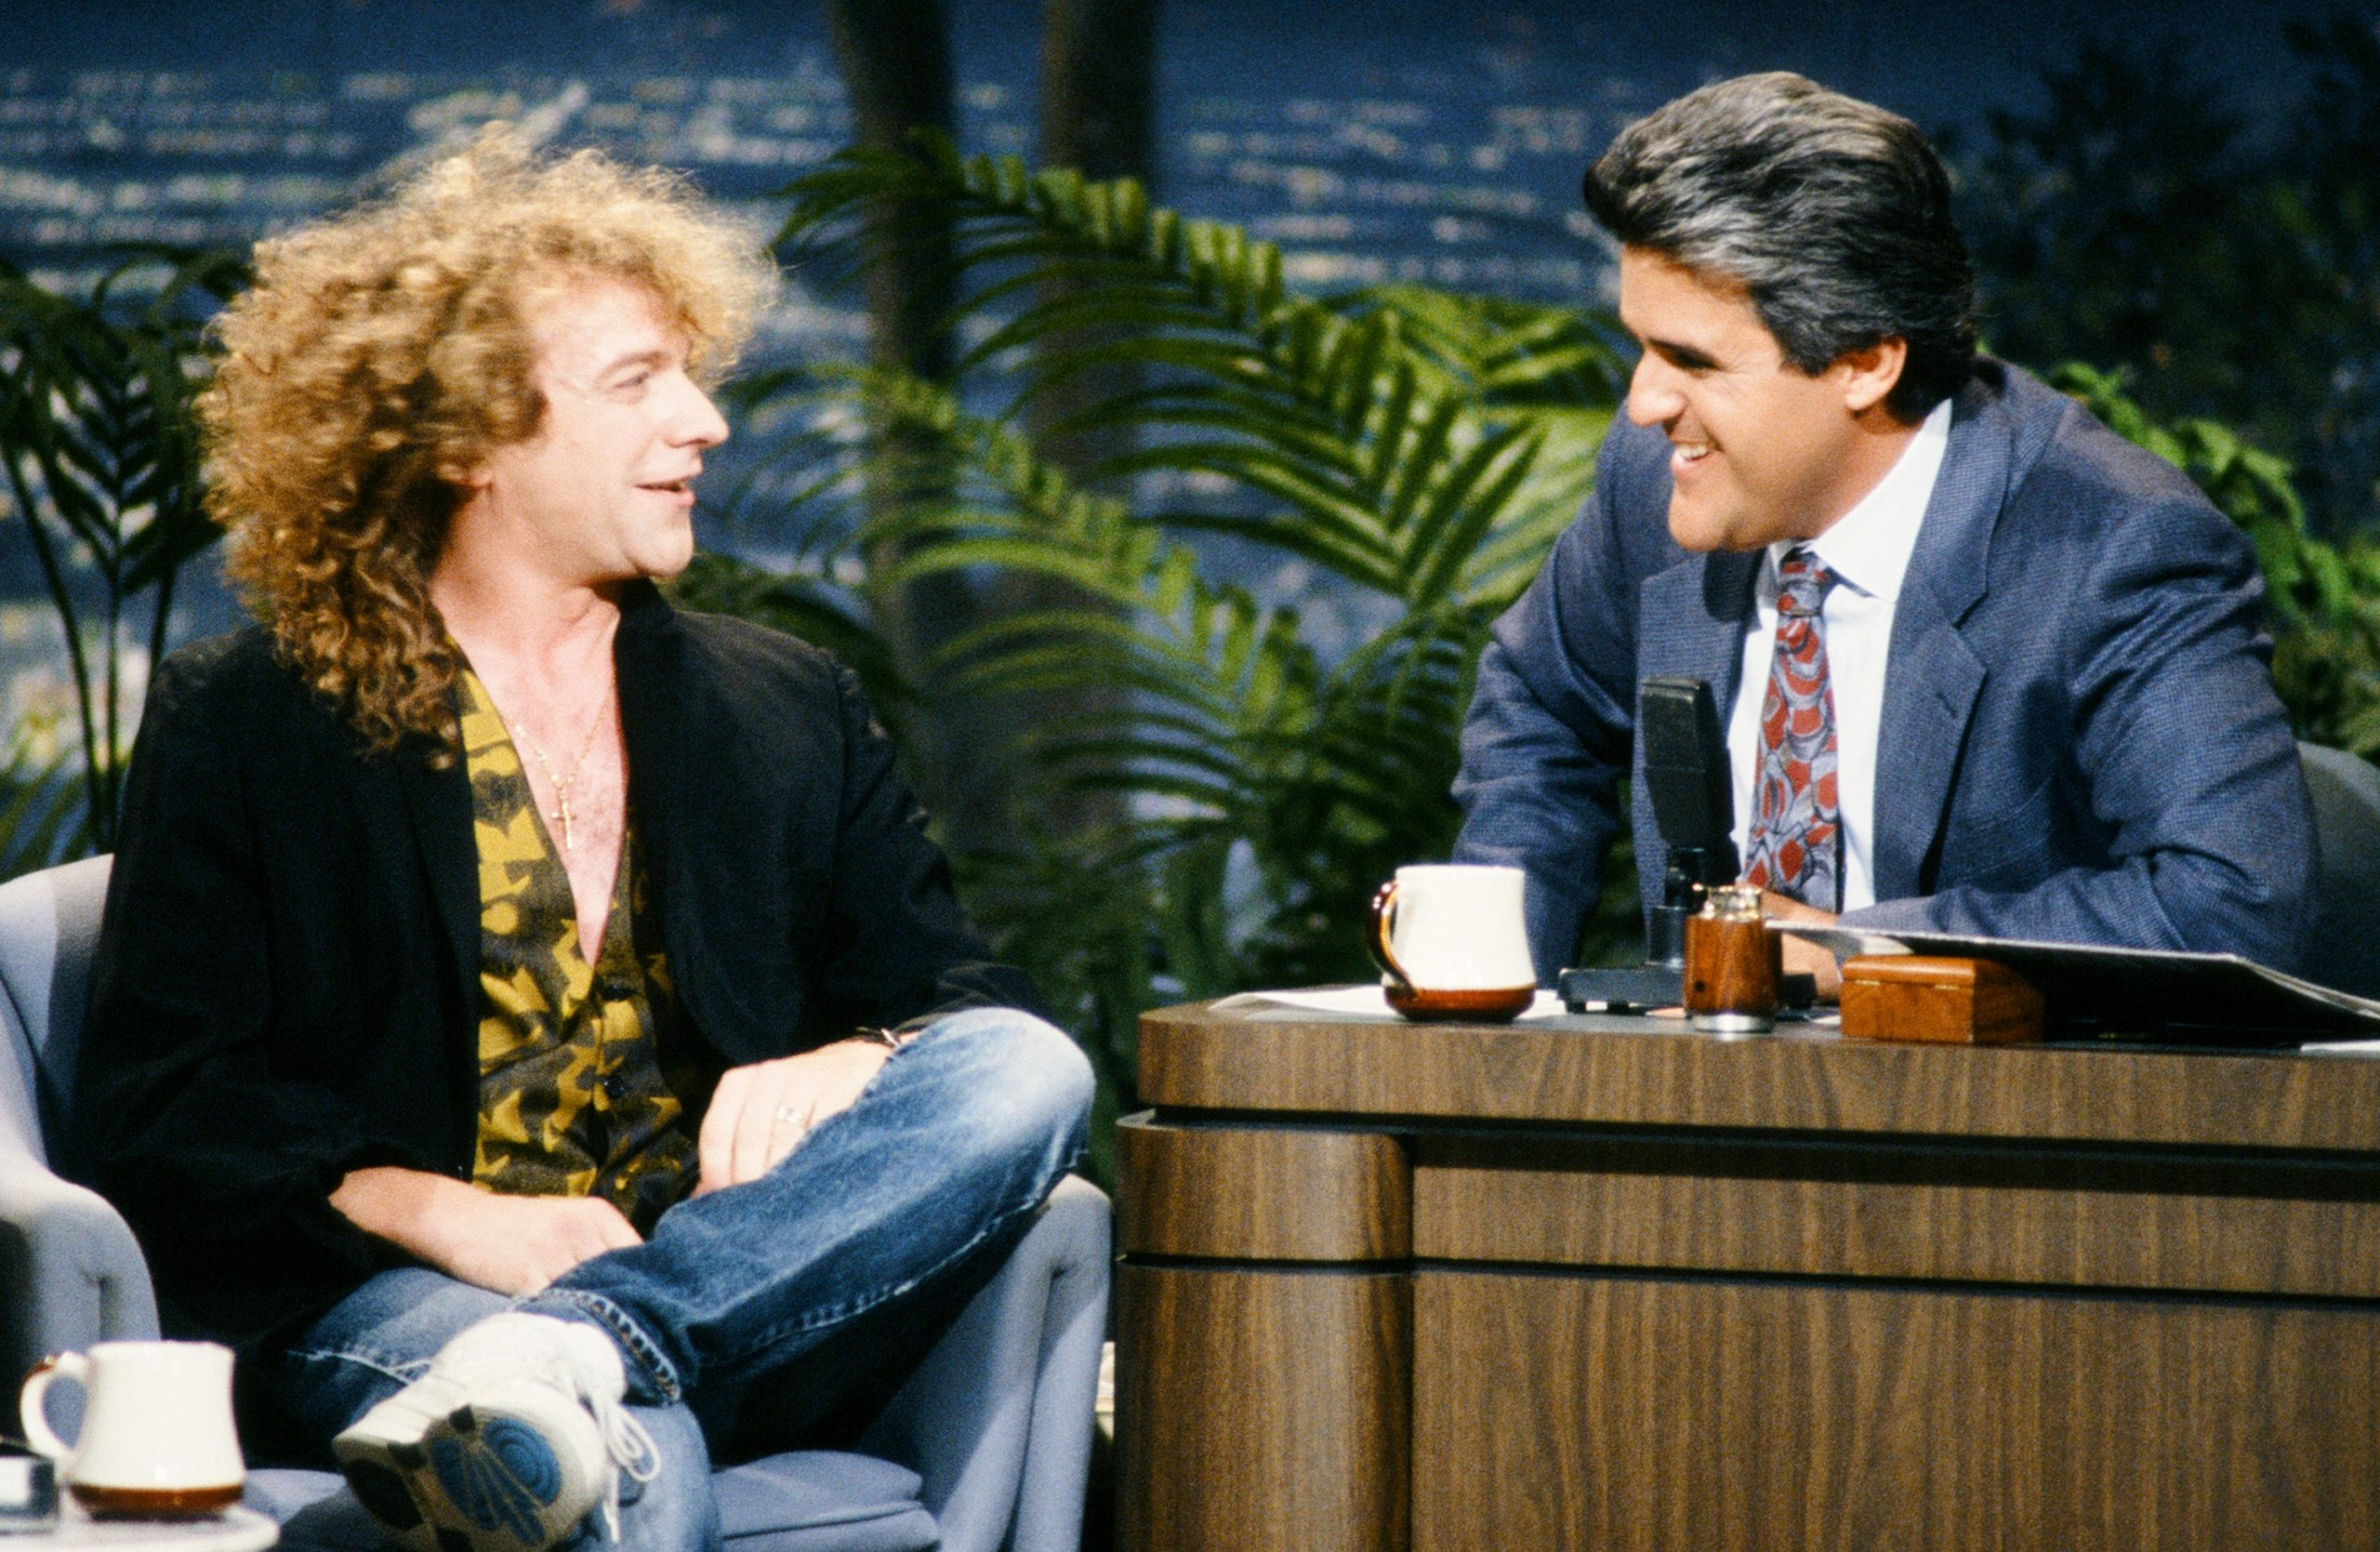 (left to right): Former Foreigner lead singer Lou Gramm, who gave 'Waiting For a Girl Like You' its soul, sat down with late-night show host Jay Leno in 1990